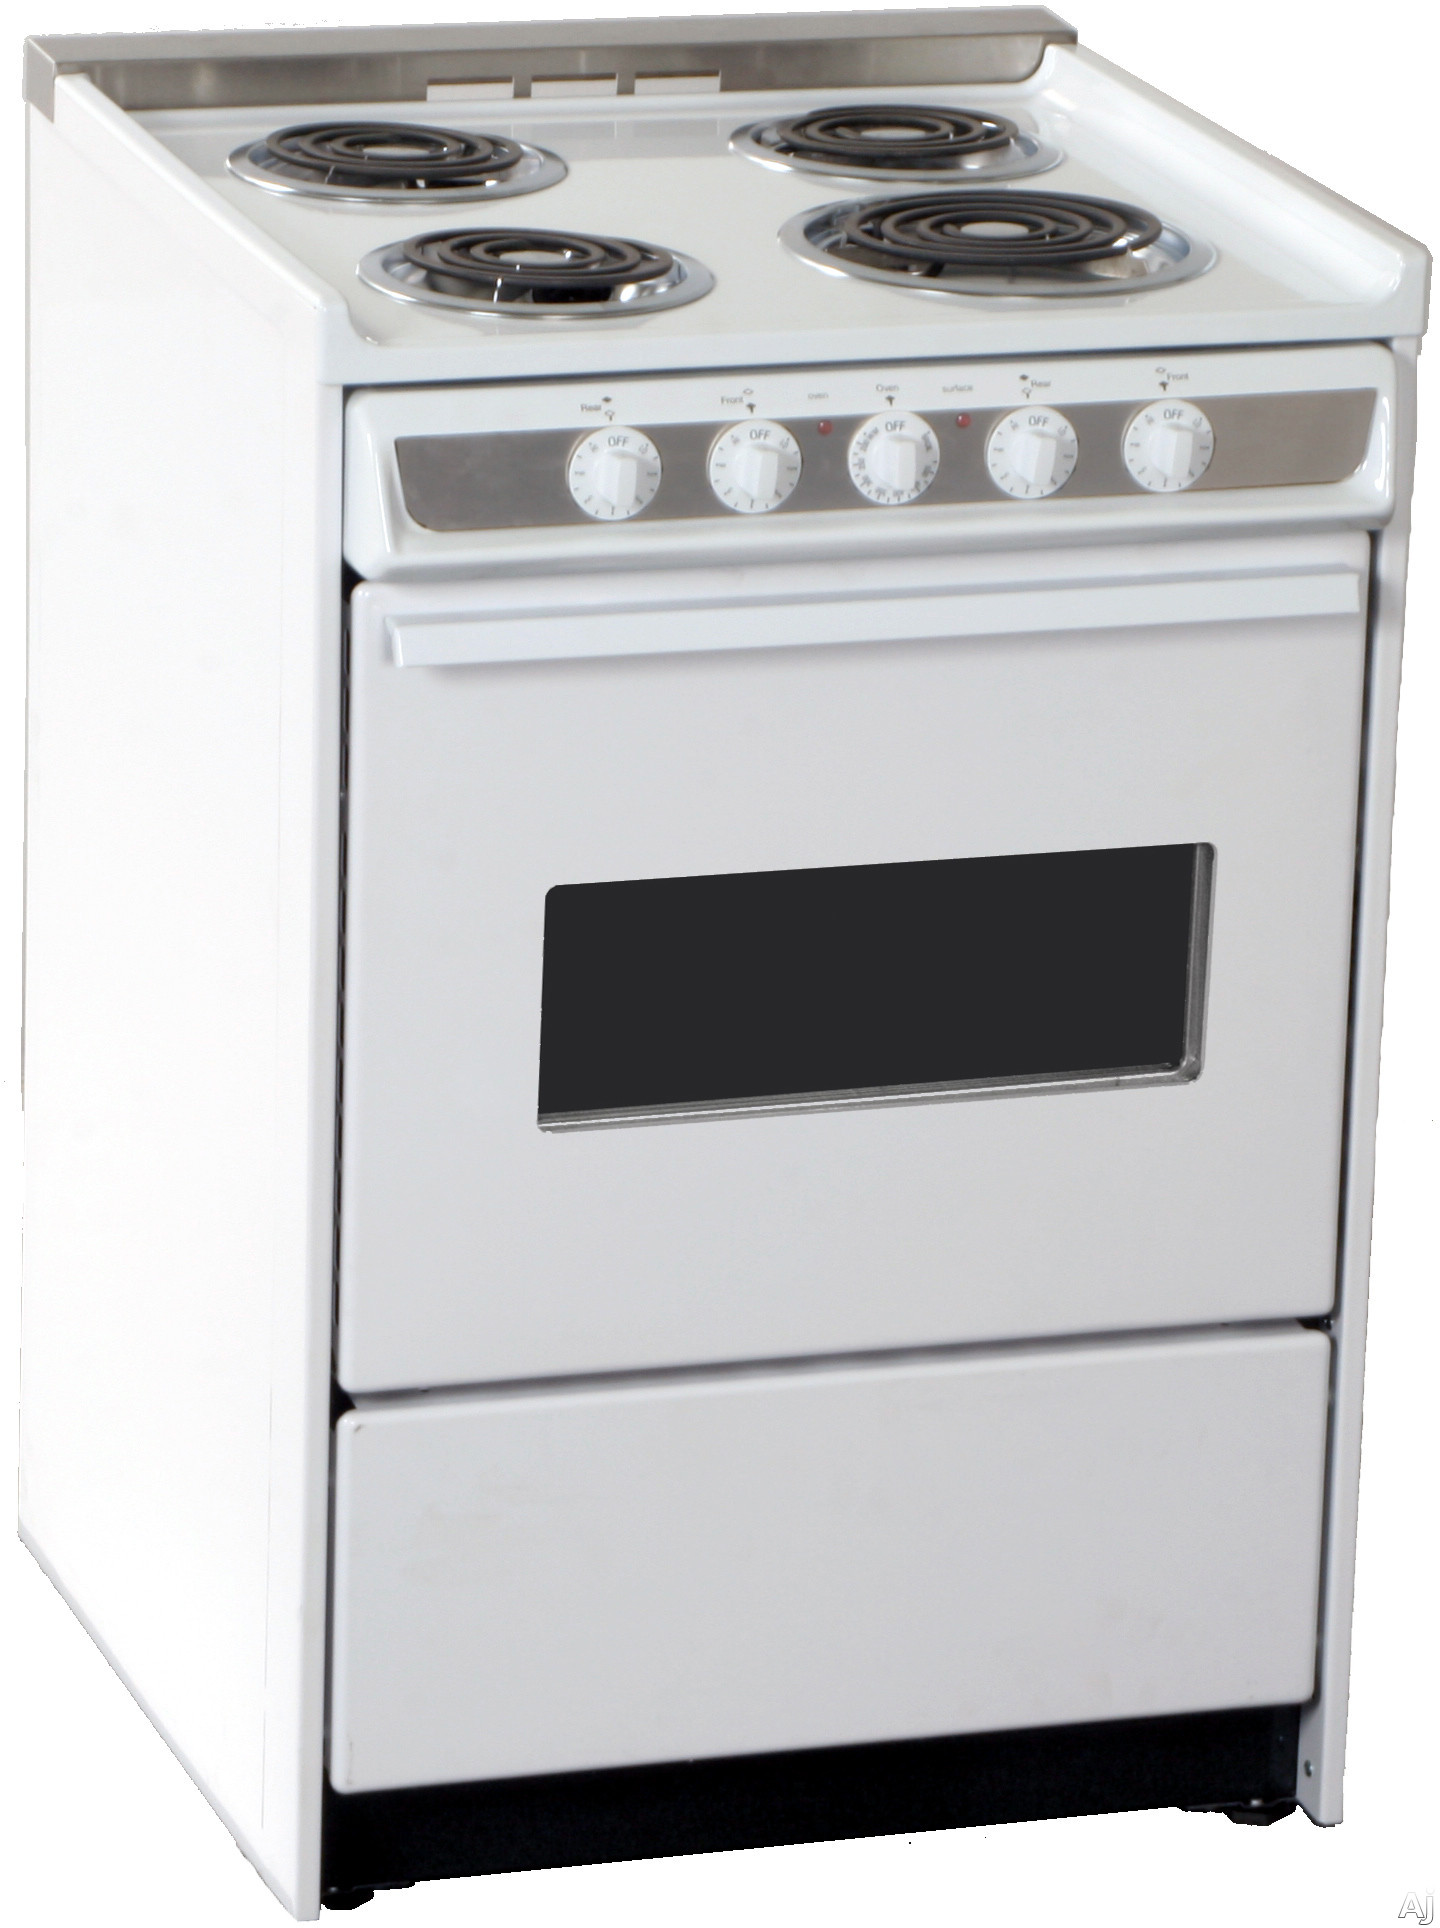 "Summit Professional Series WEM619RW 24"" Slide-In Electric Range with 2.92 cu. ft. Manual Clean Oven, U.S. & Canada WEM619RW"